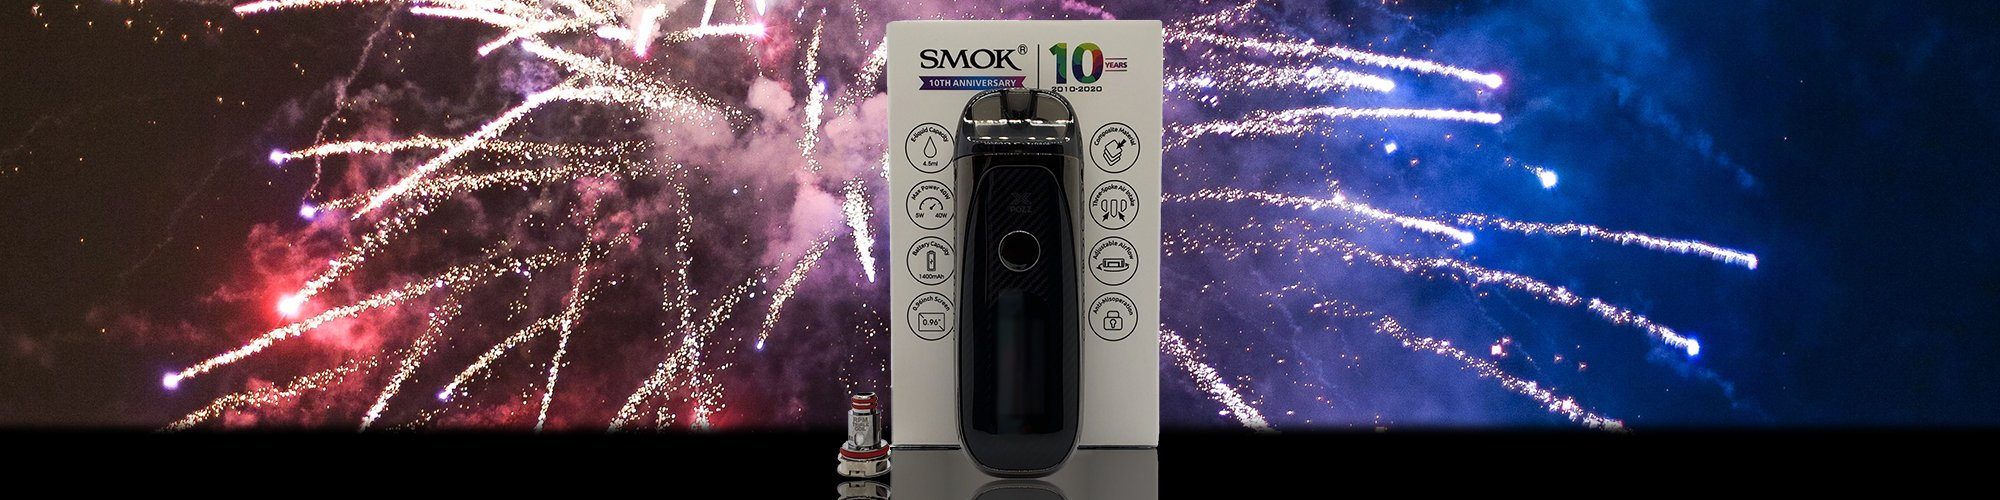 SMOK POZZ X Review Main Banner